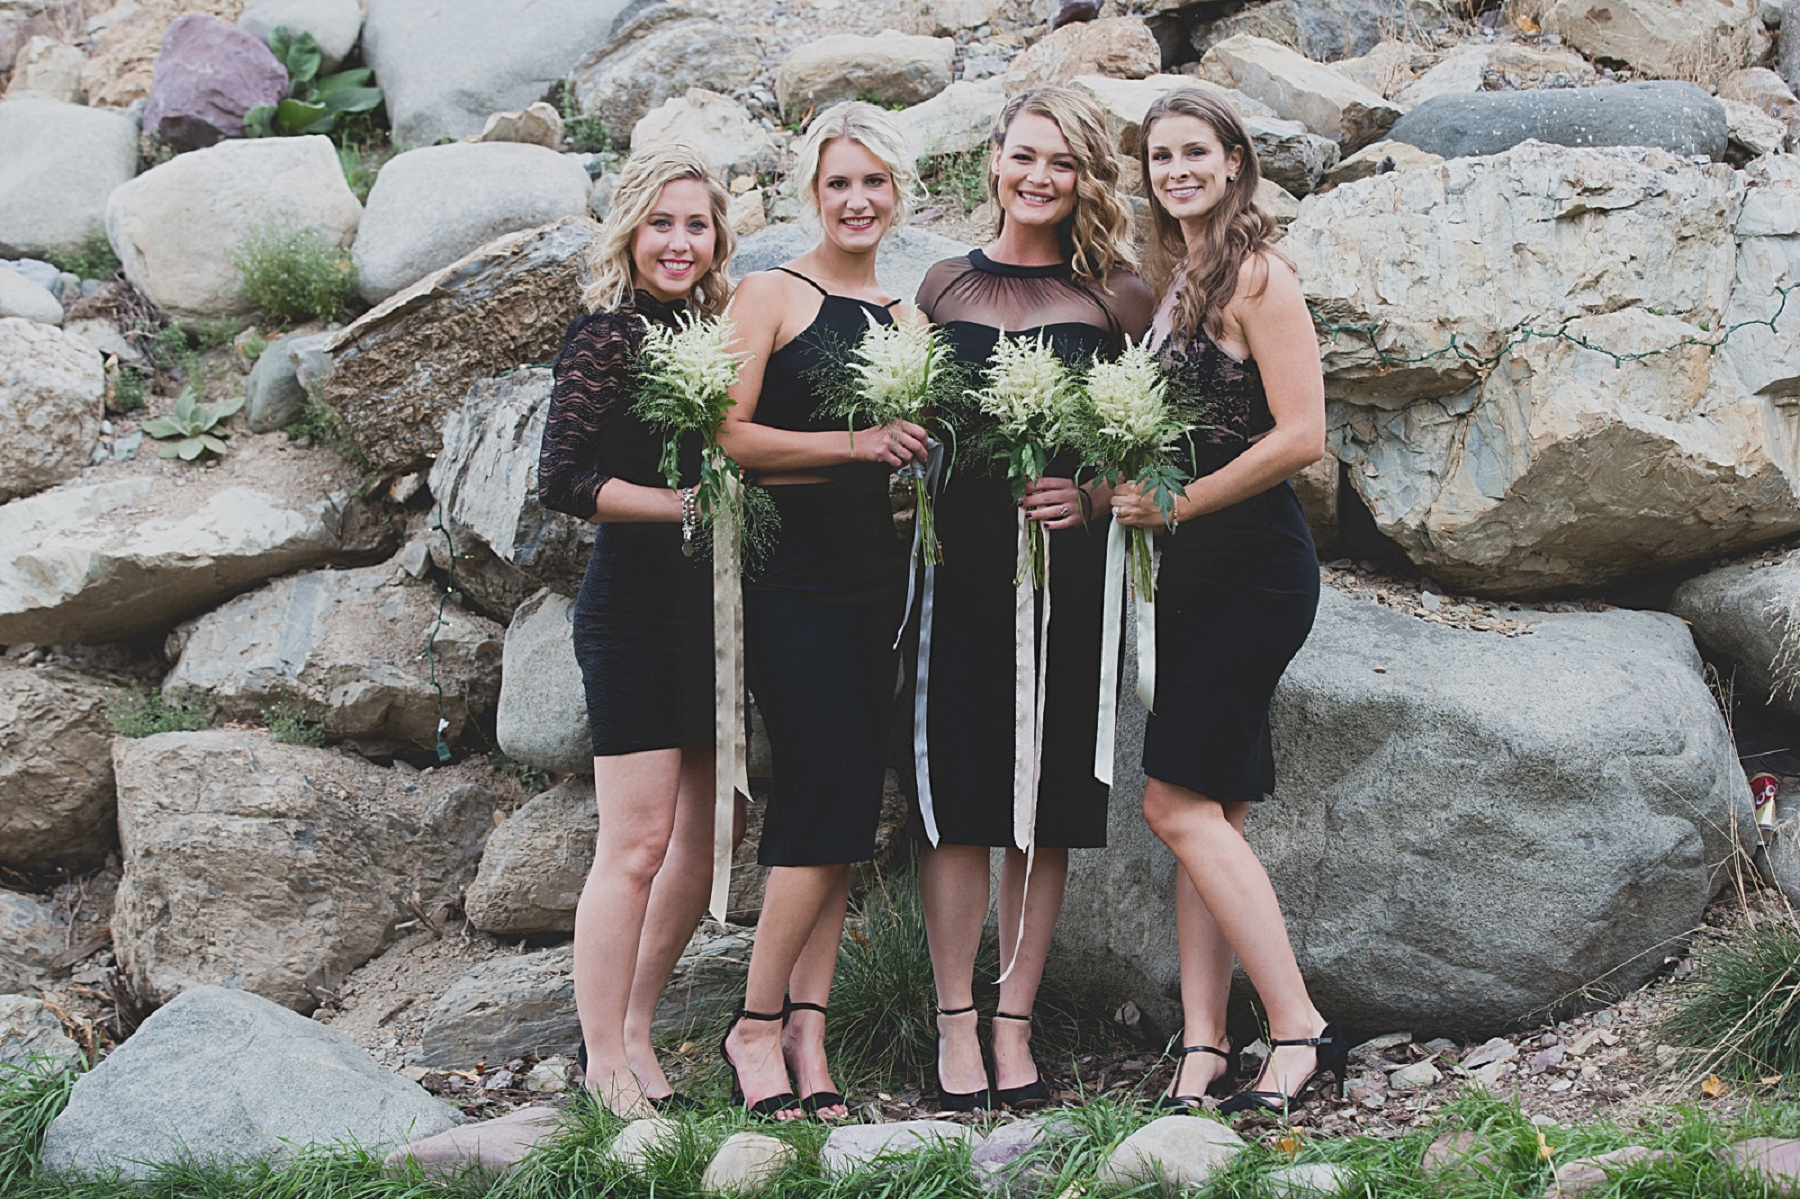 Jennifer_Mooney_Photo_glacier_park_wedding_Beargrass_florals_fall_wedding_elegant_montana_destination_velvet_bride_katie_may_dress_verona_gown_00040.jpg